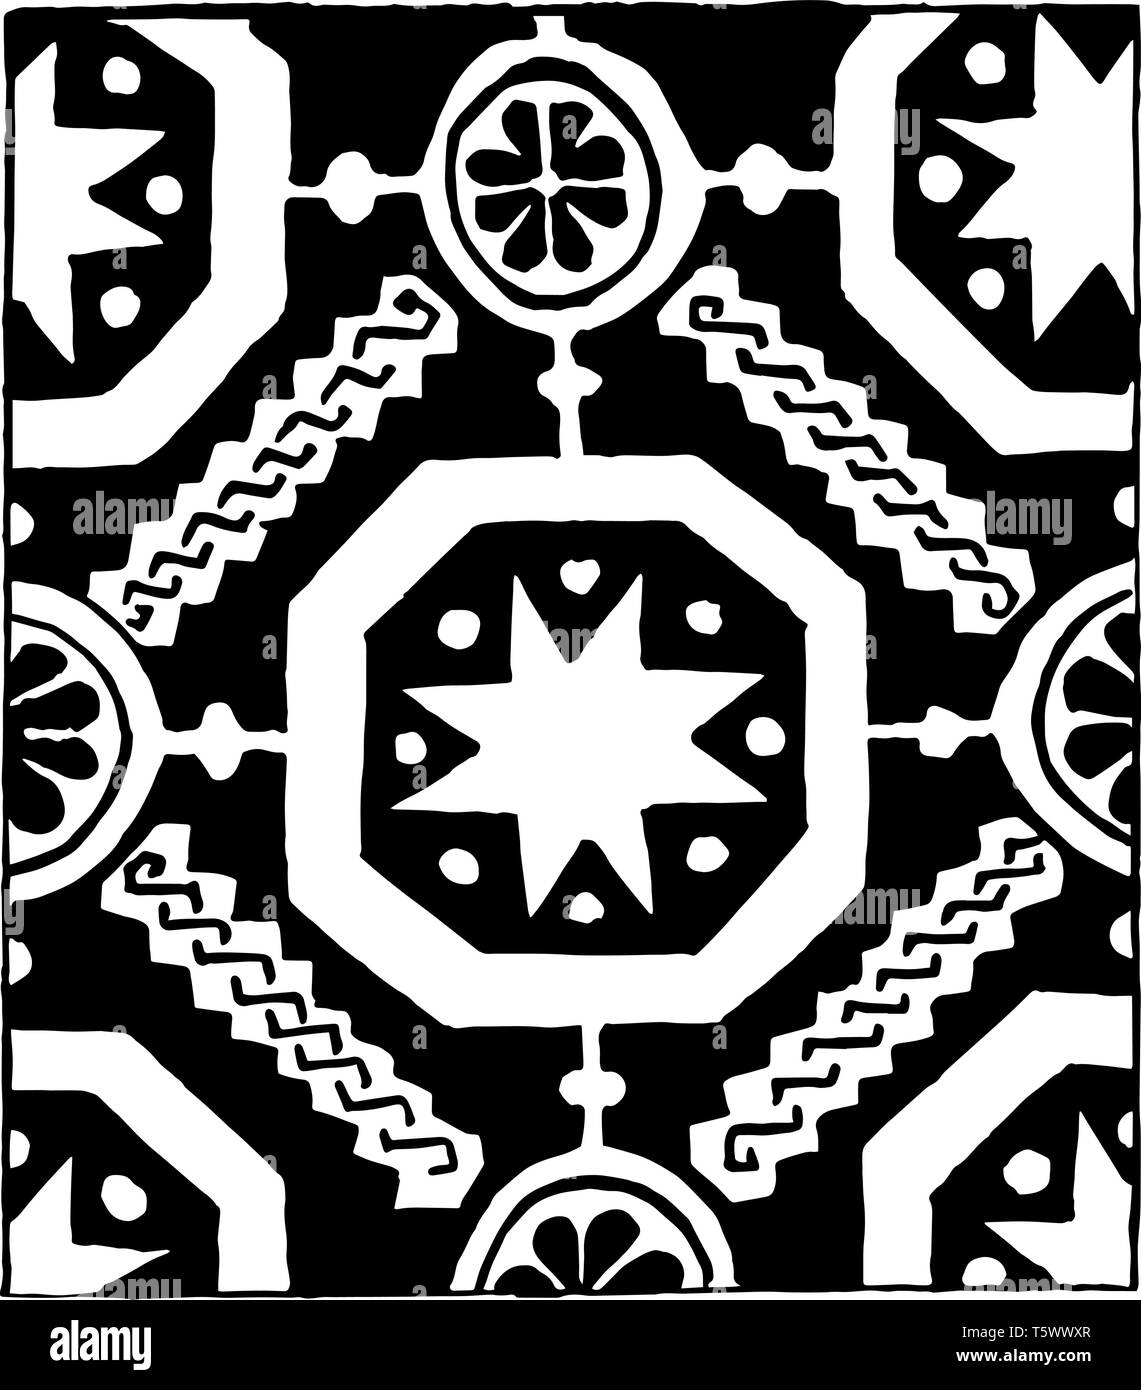 13th Century Weave Design it is also a 14th century weaving design It consists of star and floral patterns that are connected vintage line drawing or  - Stock Vector